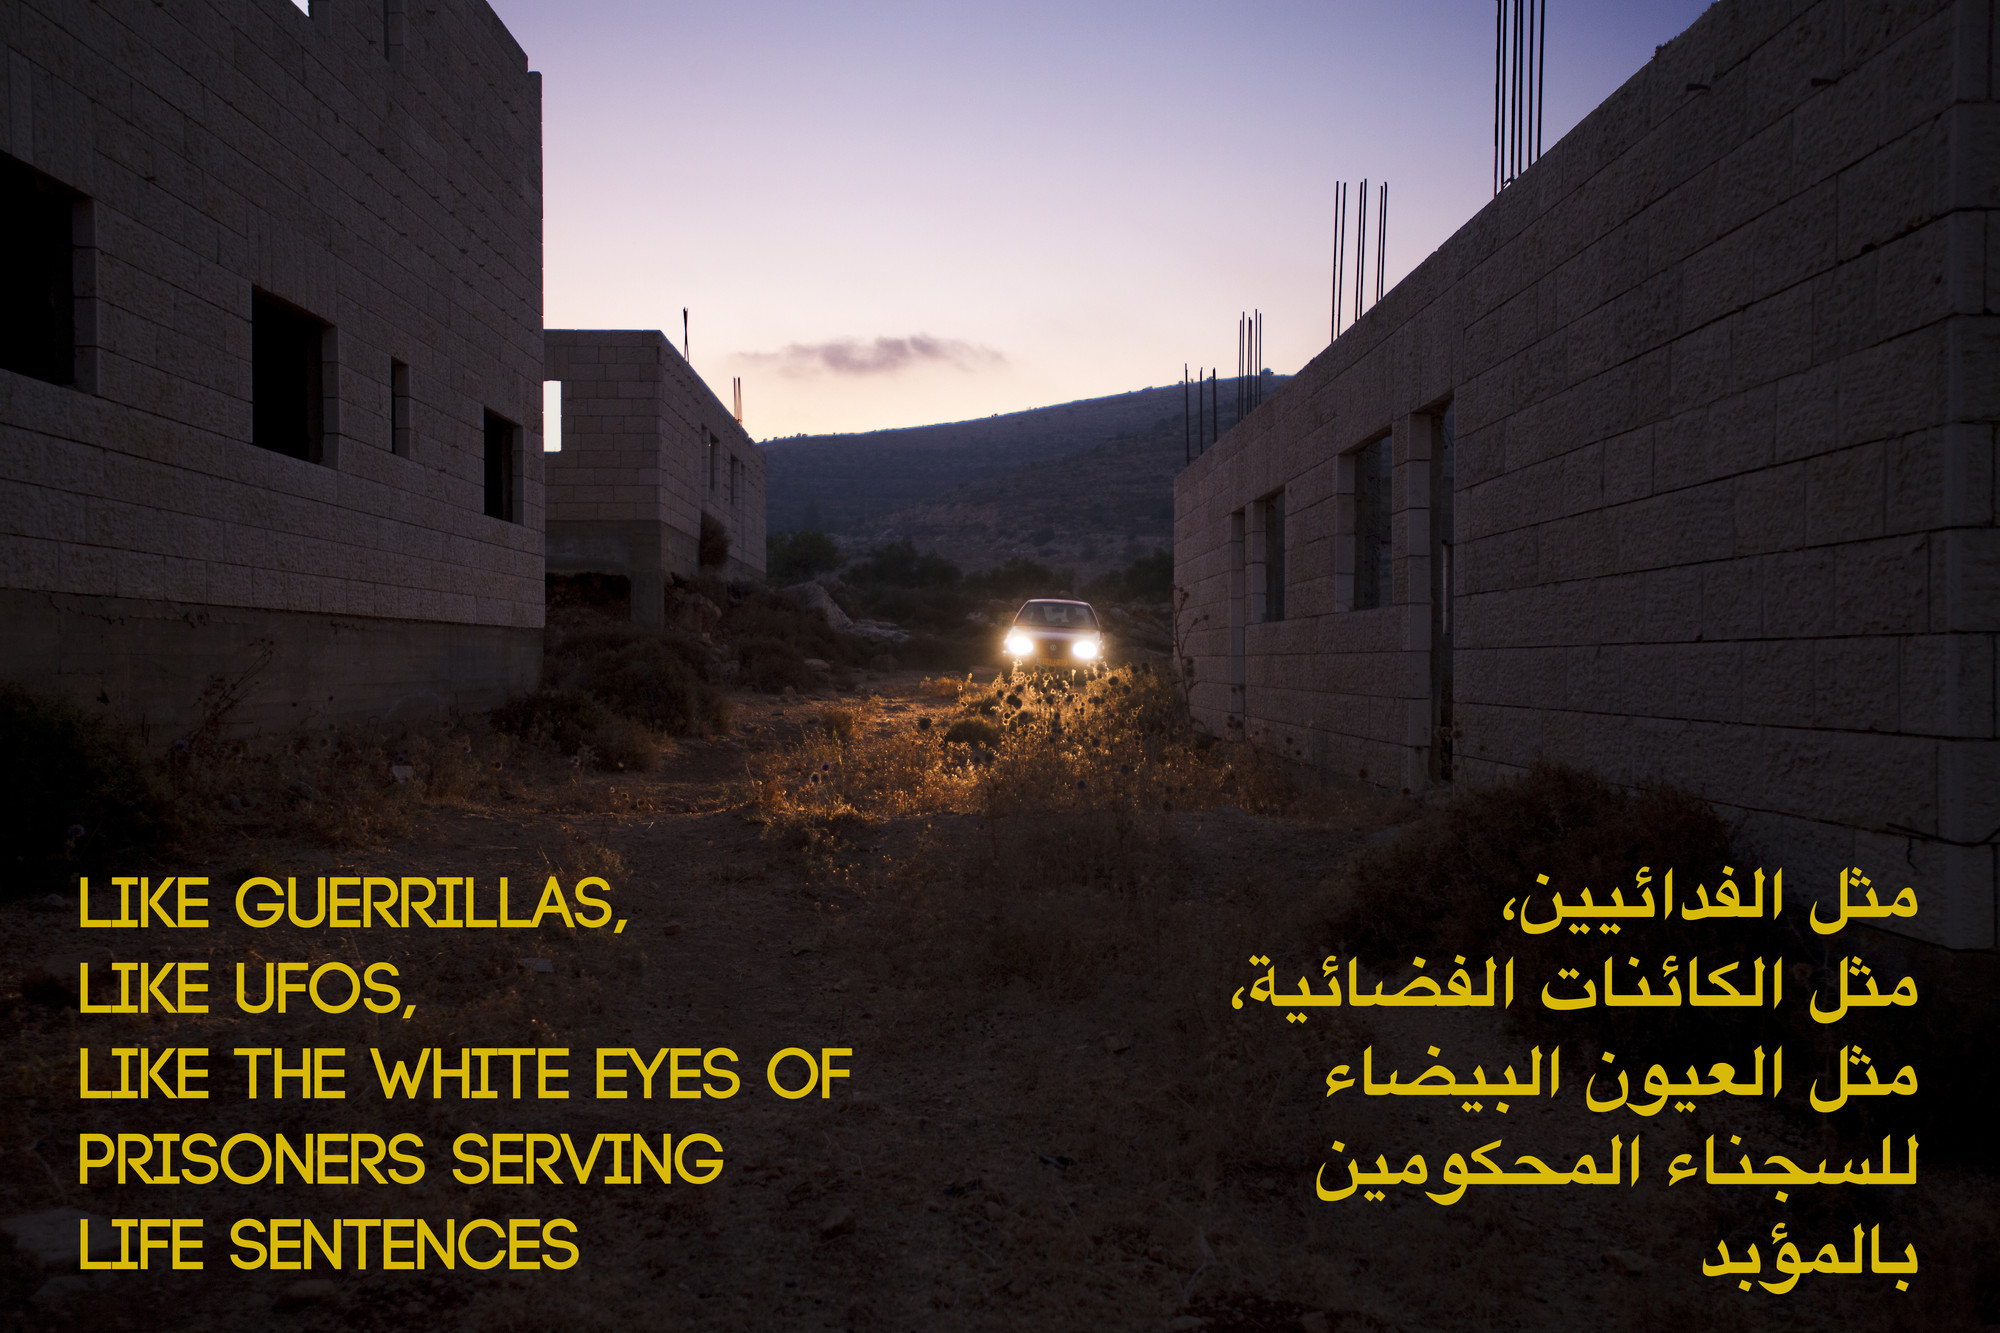 Basel Abbas, Ruanne Abou-Rahme. The Part About the Bandits, Part 1 of the Incidental Insurgents. 2012-2015